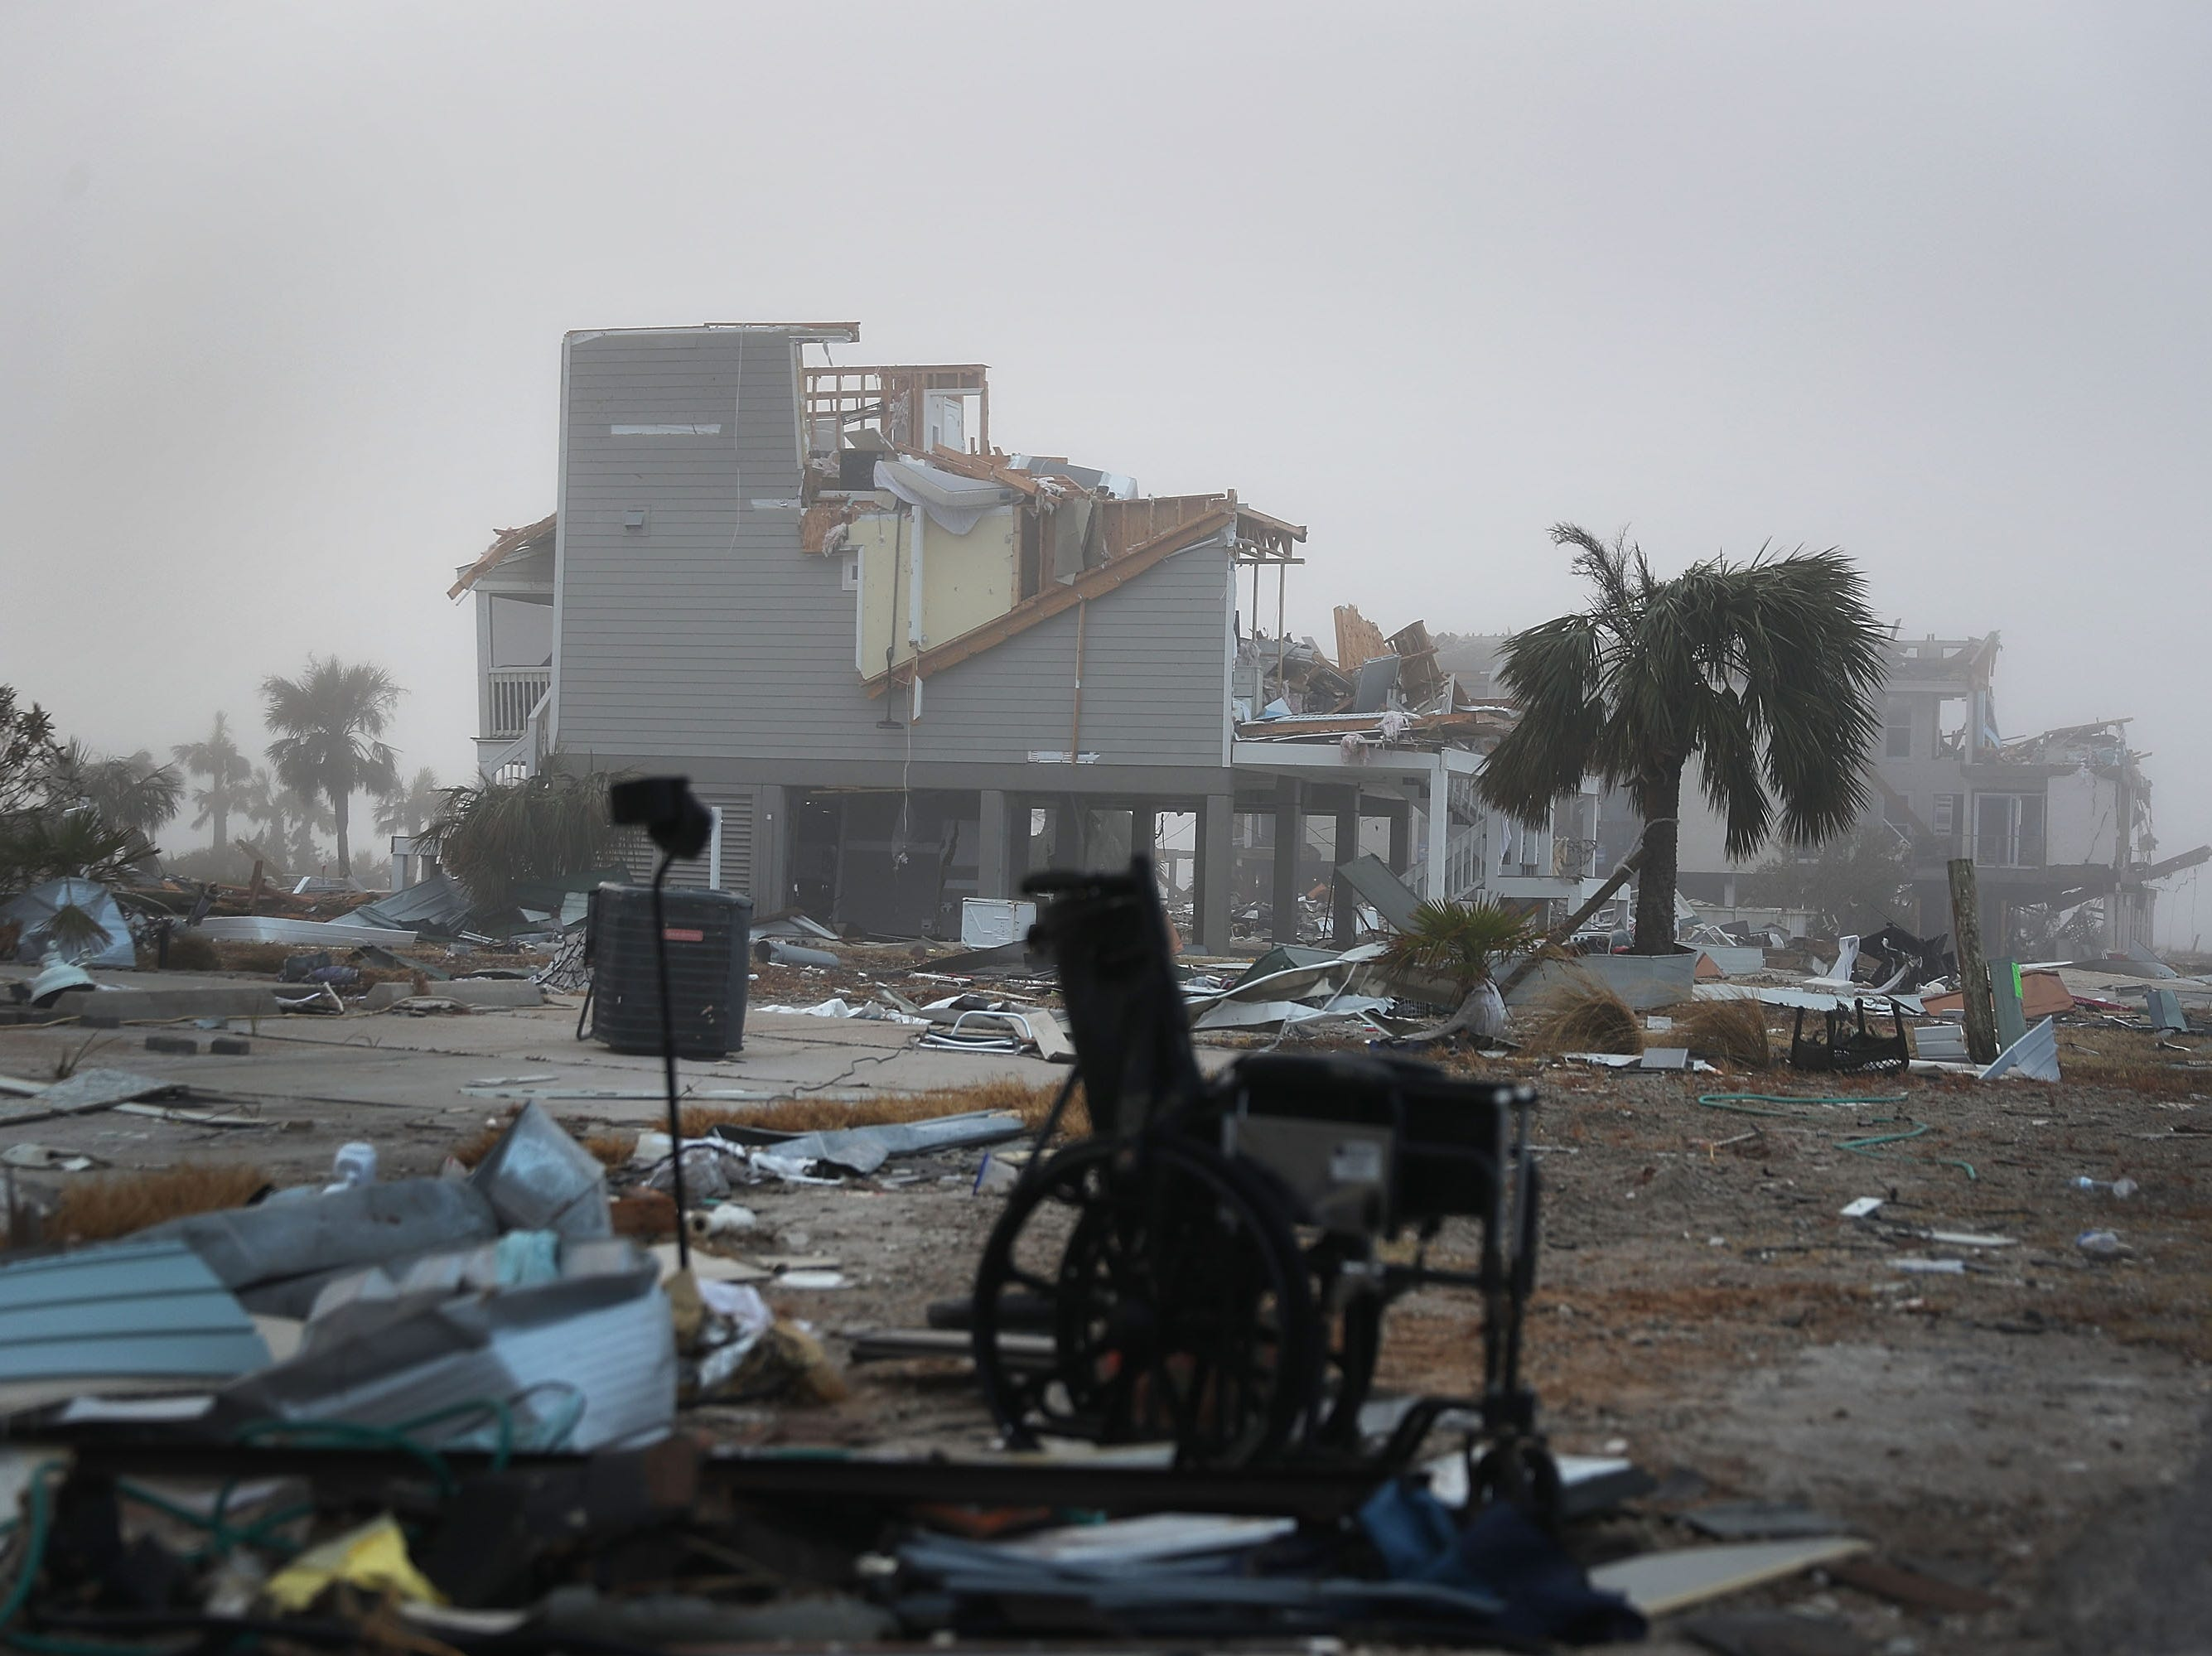 Destroyed houses sit in debris and rubble in the aftermath of Hurricane Michael on Oct. 17, 2018 in Mexico Beach, Fla.